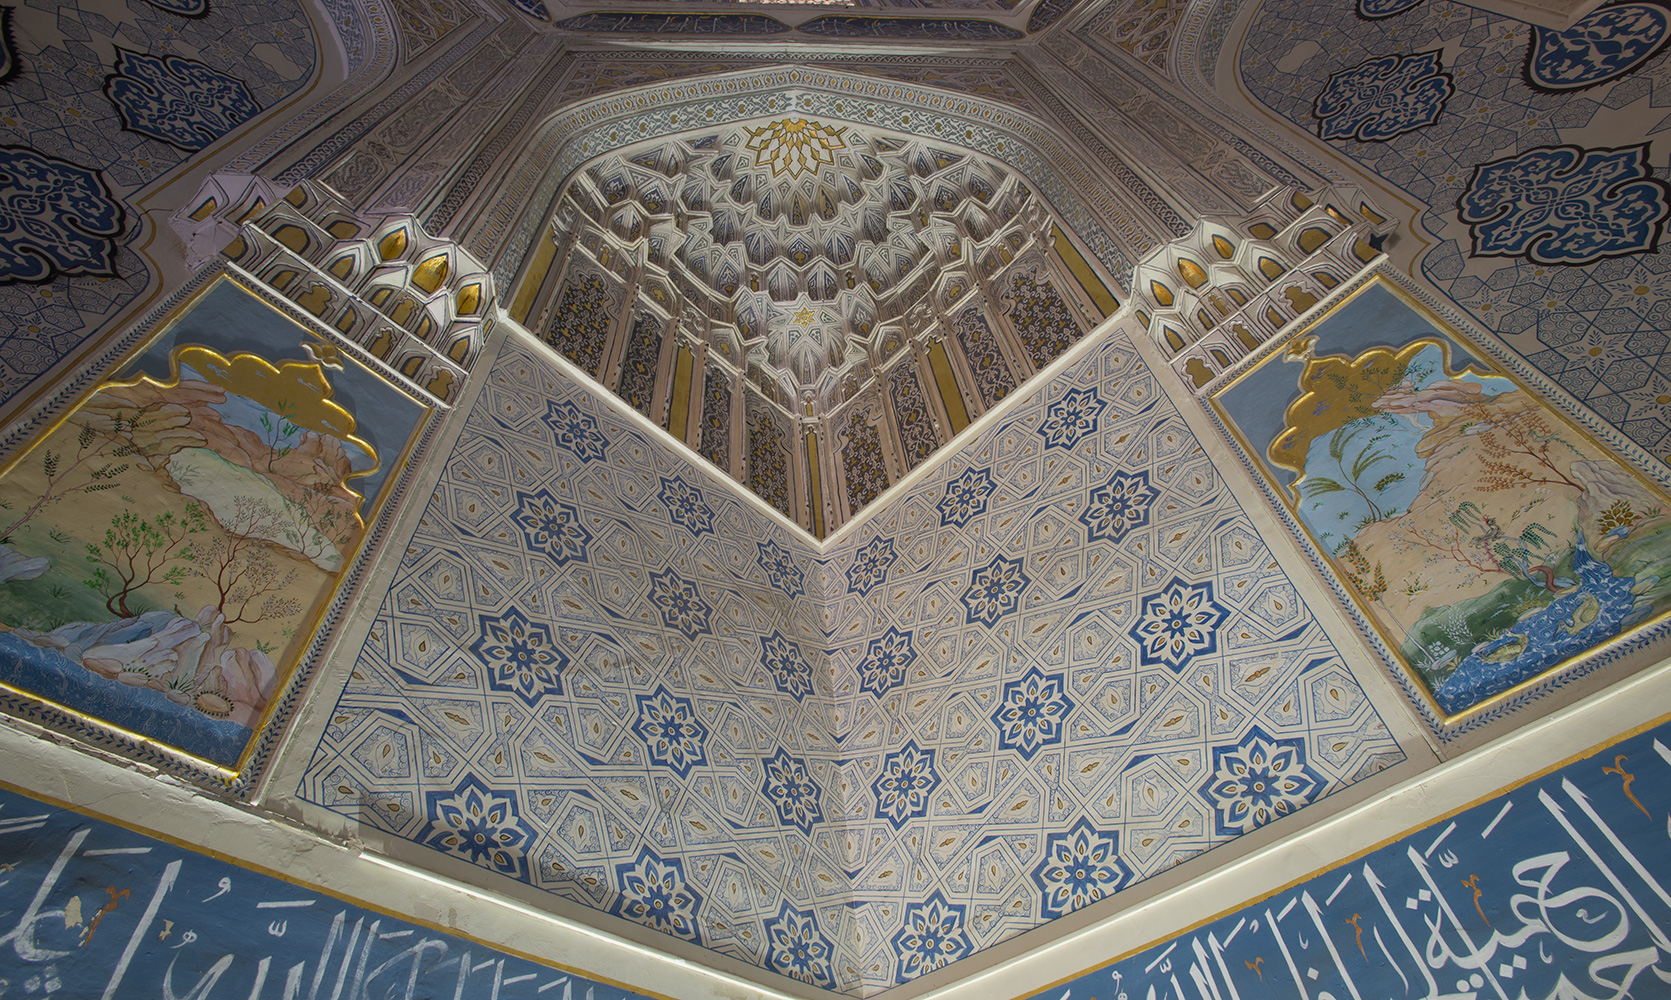 The interior of the mausoleum of Emir Timur's neice, Shadi Mulk Aka. 1372. This was the first Timurid structure constructed here.